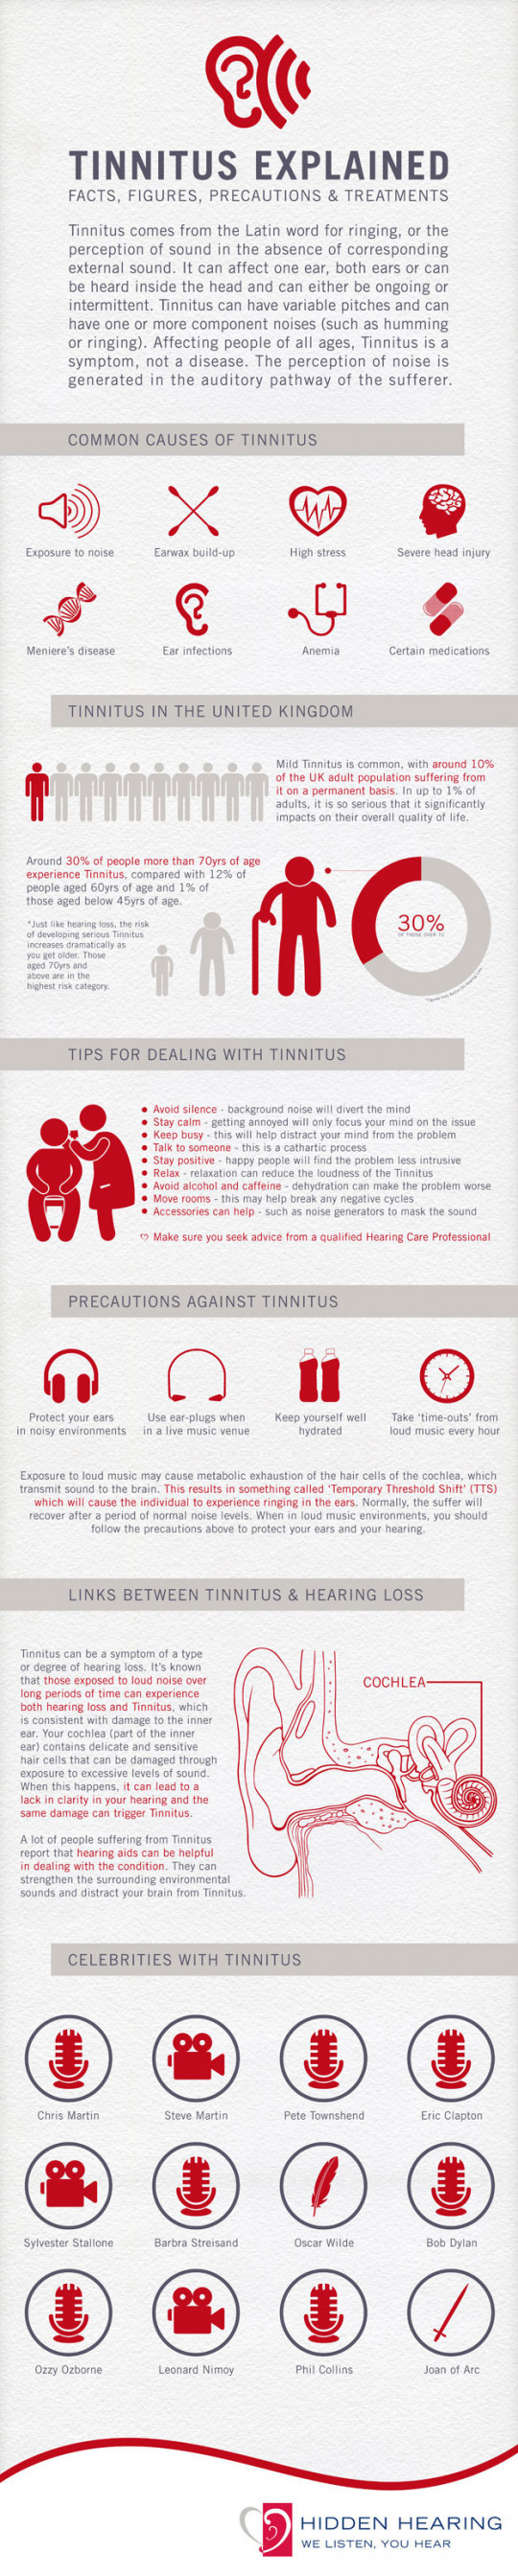 Tinnitus Explained